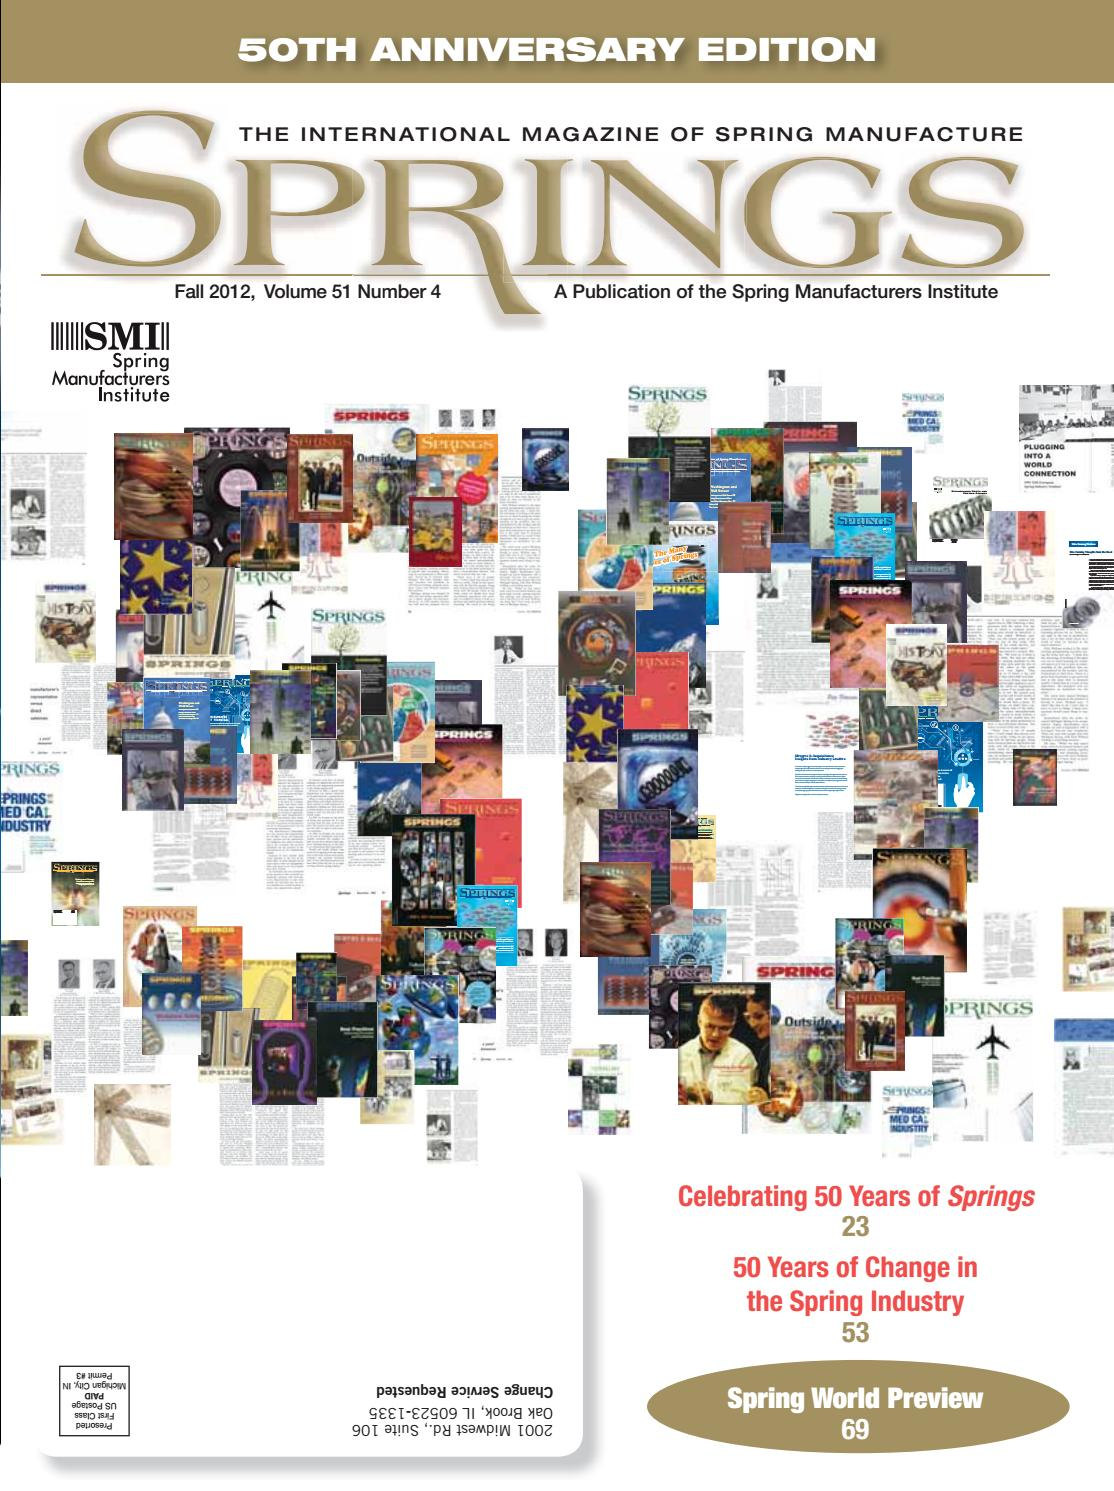 Springs fall 2012 vol 51 no4 by Spring Manufacturers